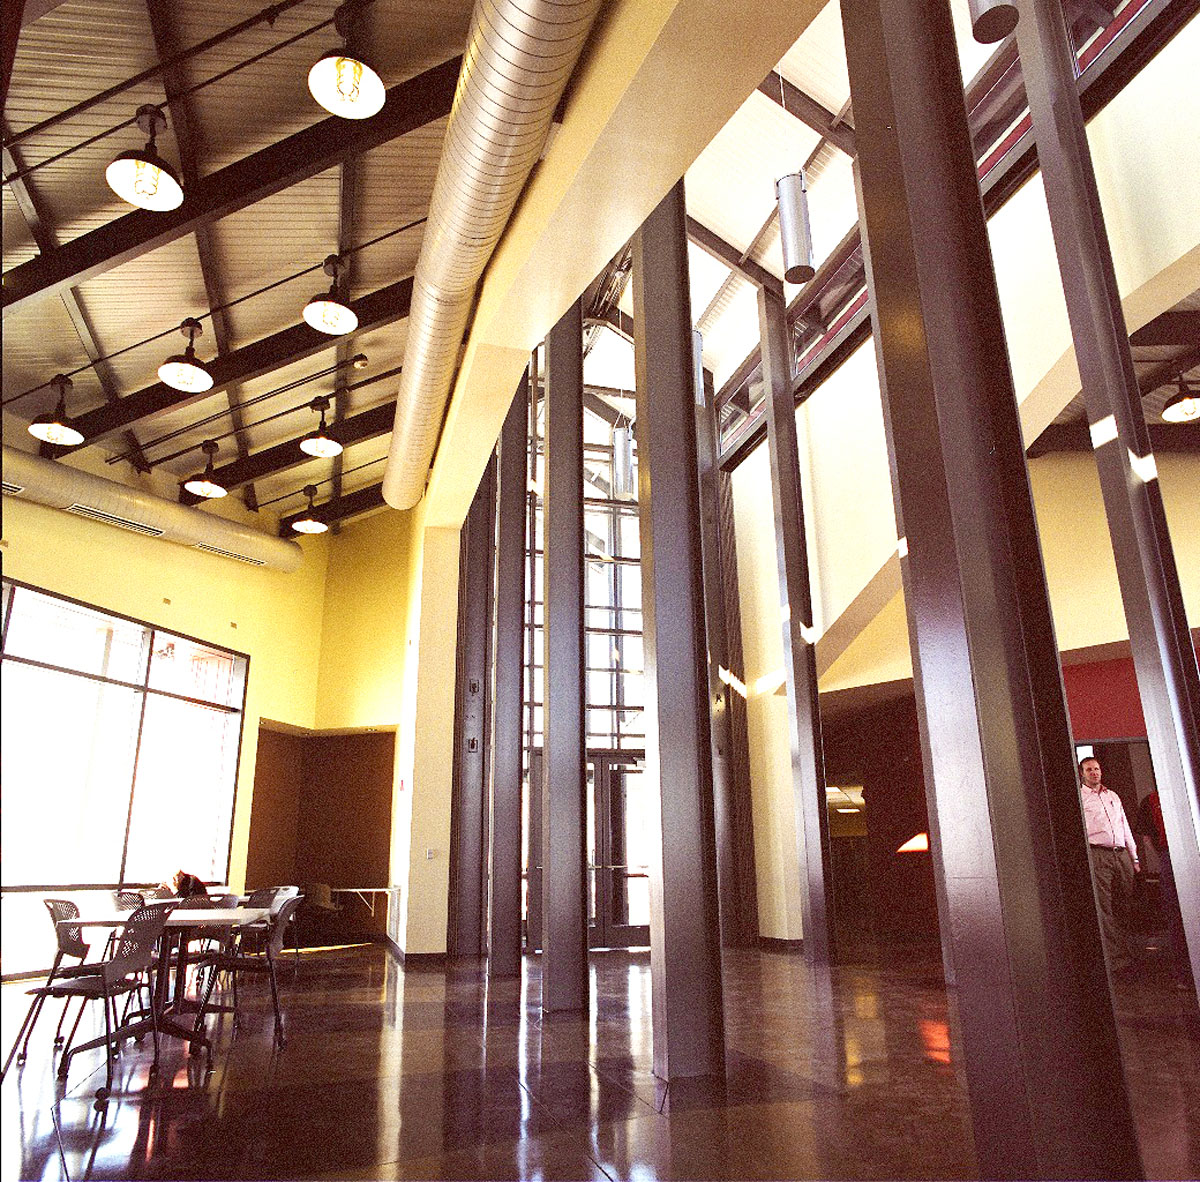 Steel beams run down the middle of the lobby inside the Agricultural Teaching and Research Facility.